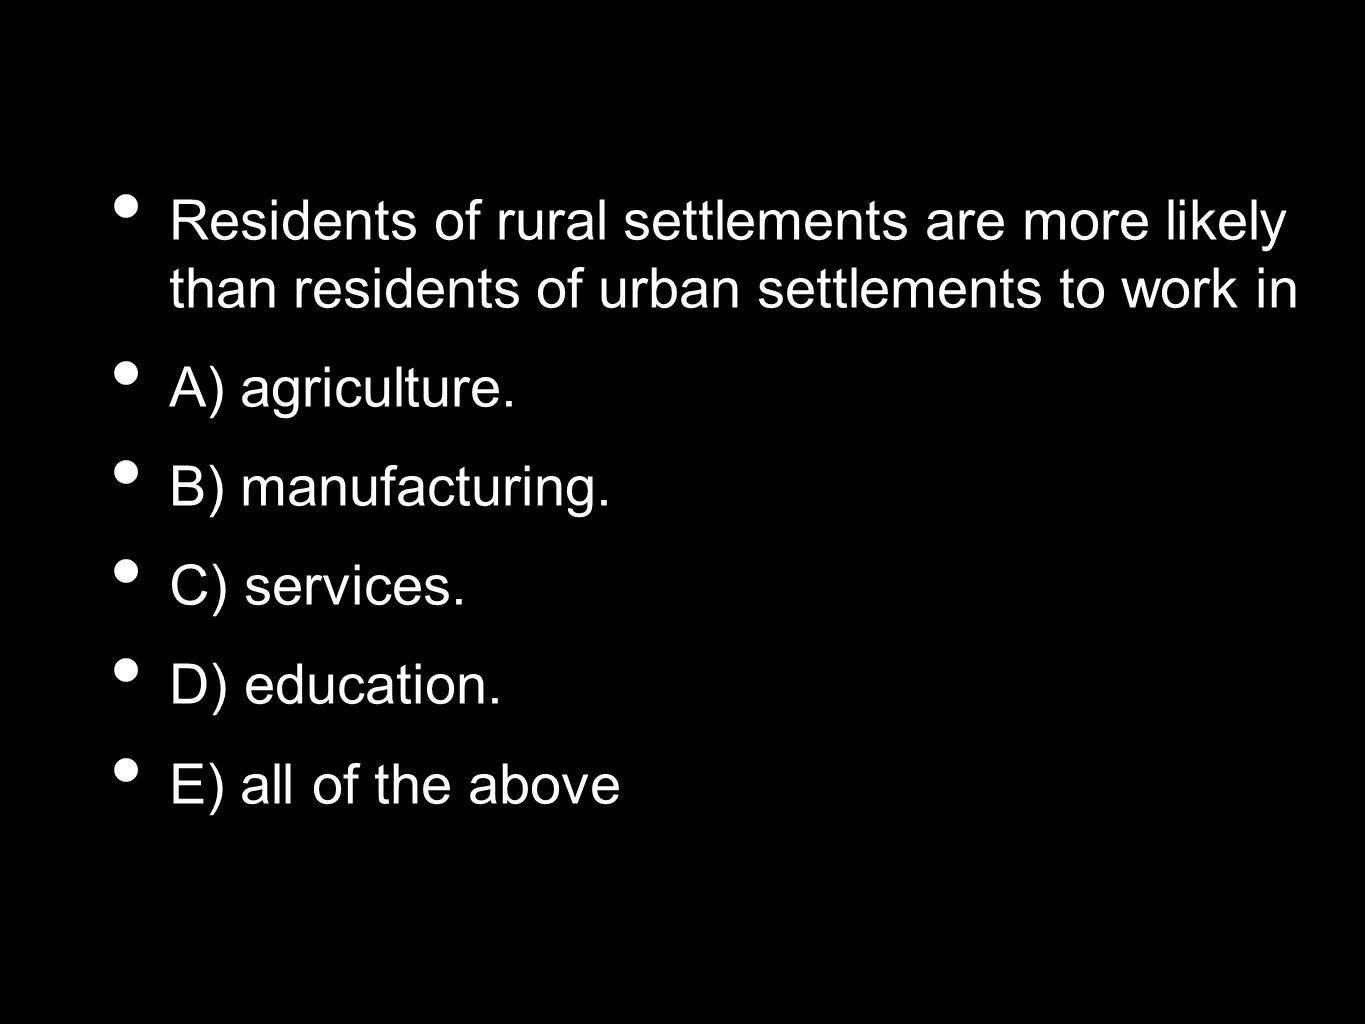 Residents of rural settlements are more likely than residents of urban settlements to work in